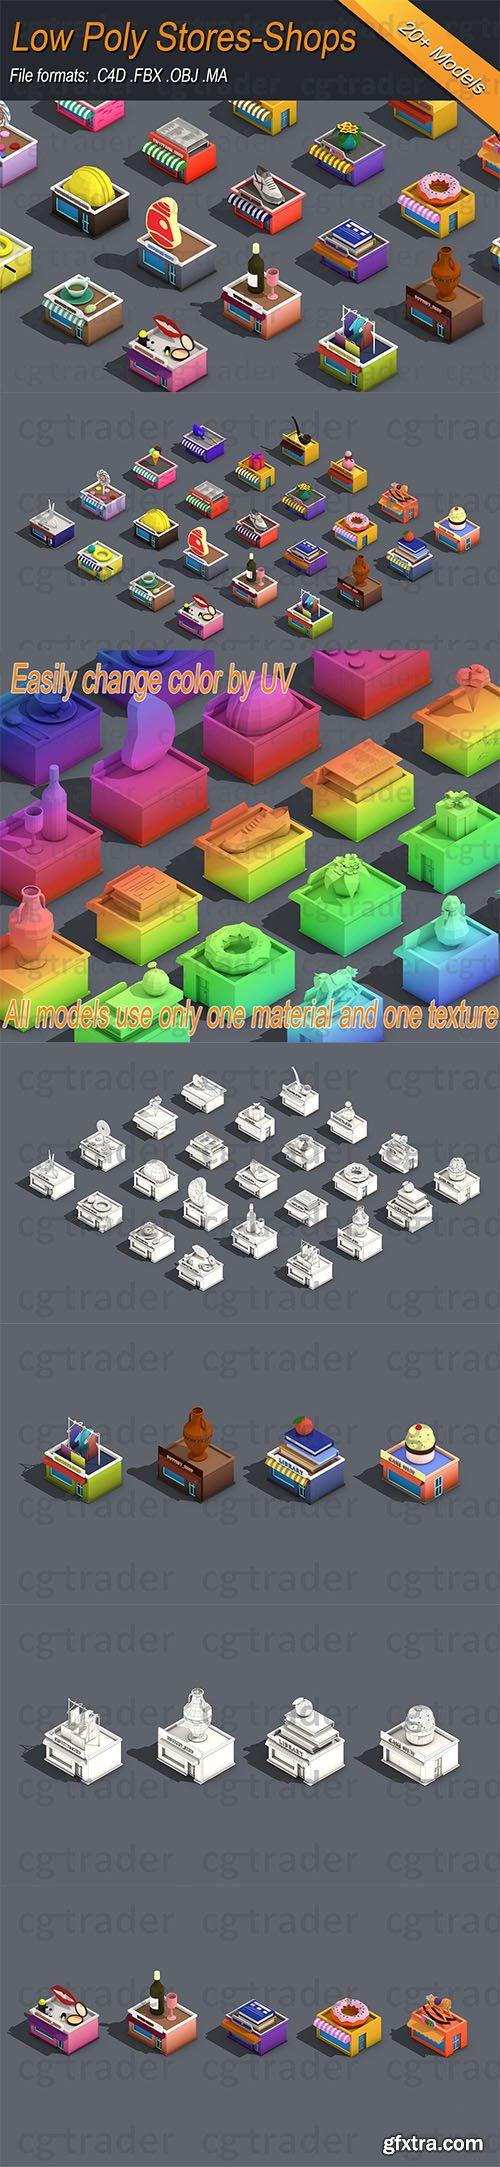 Cgtrader - Low poly Stores Shops Isometric Low-poly 3D model